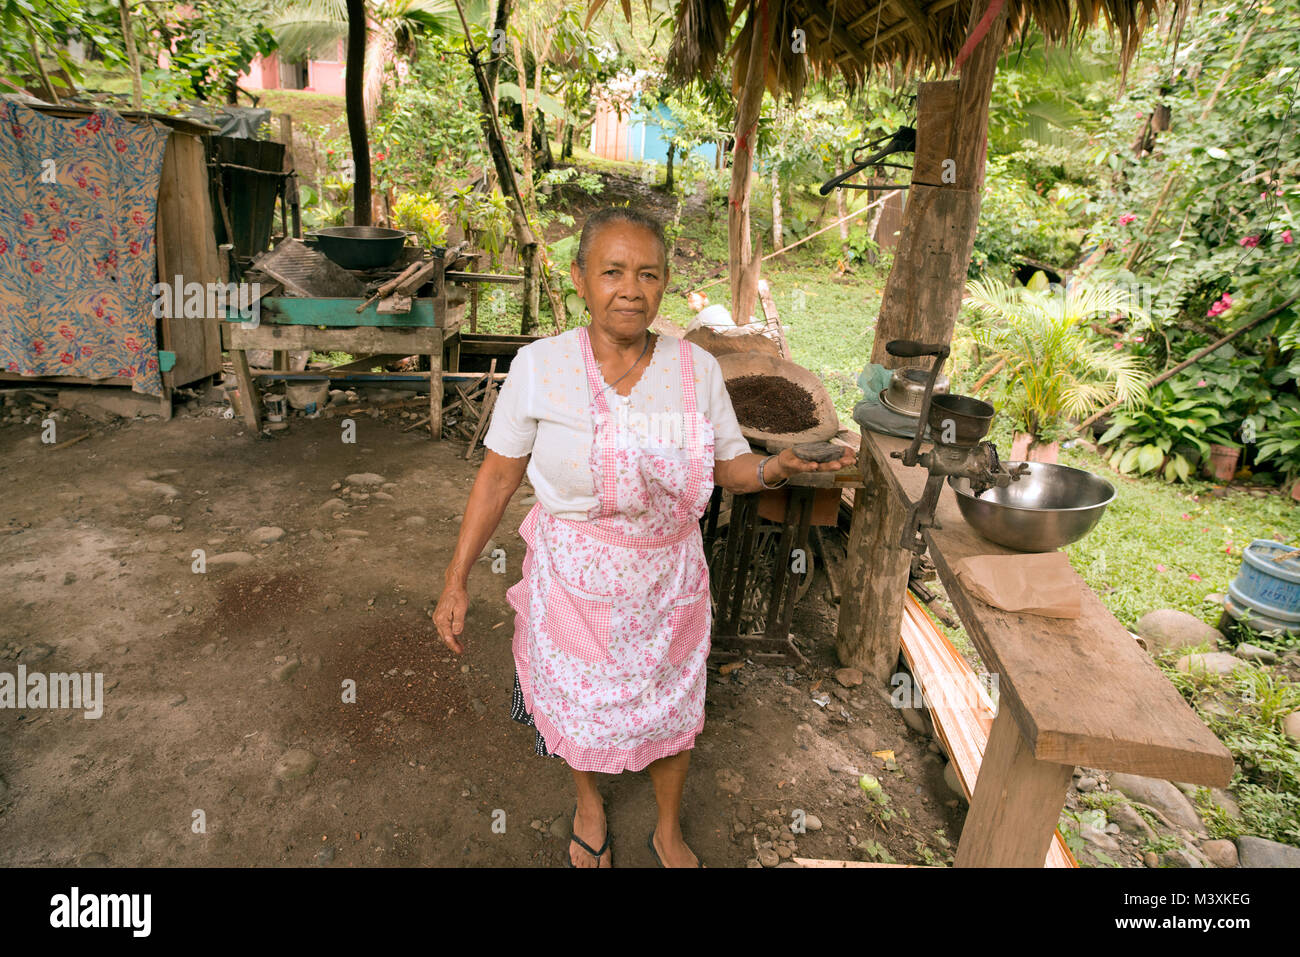 An elderly, indigenous Bribri lady makes chocolate paste from cocoa beans. - Stock Image